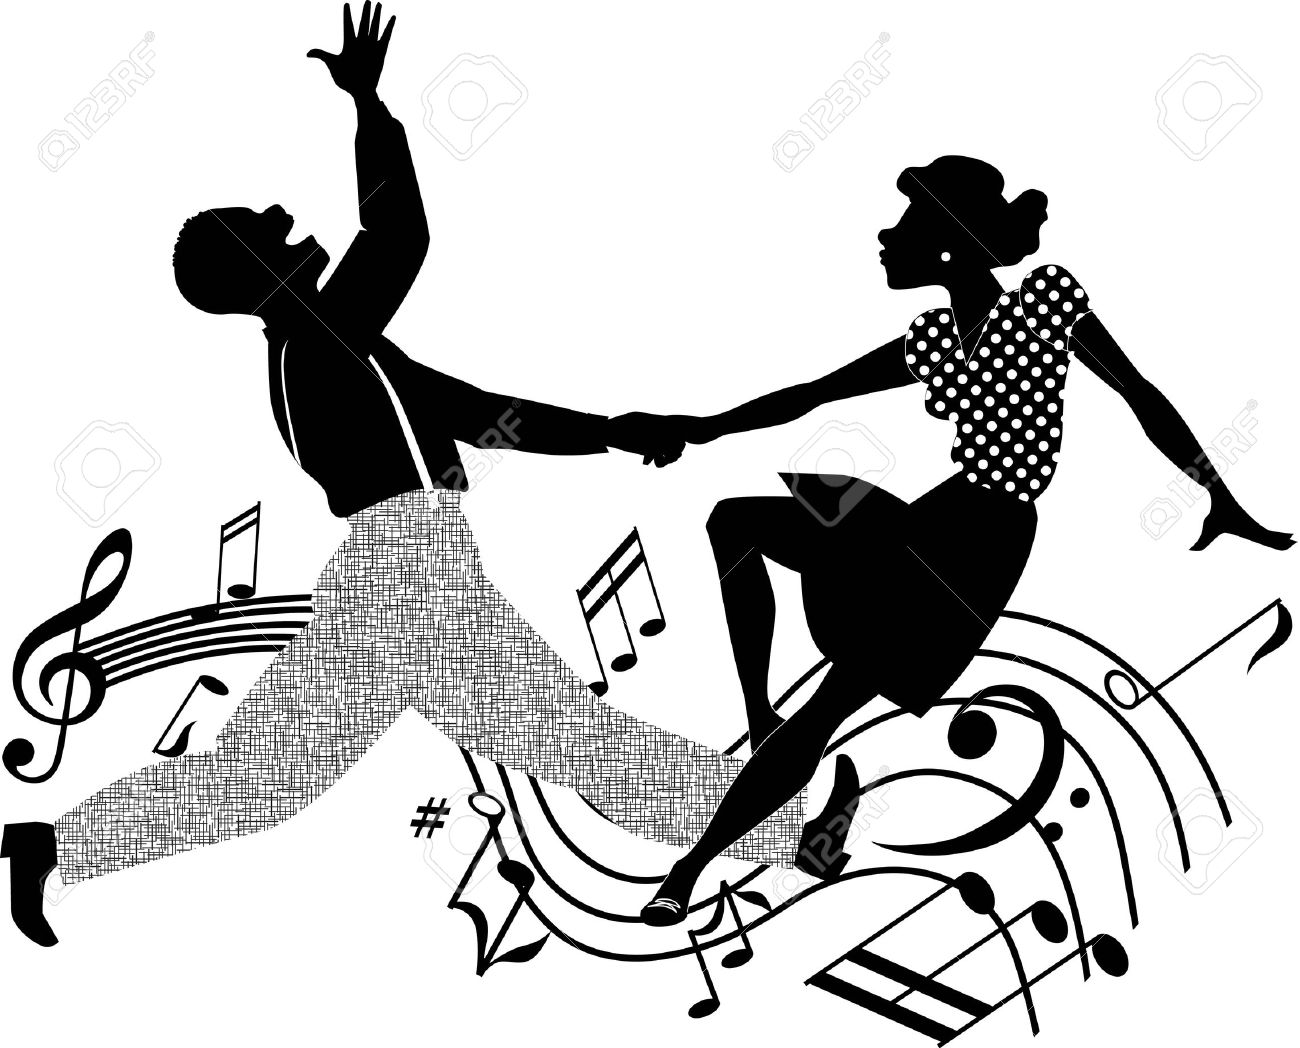 31354423-black-and-white-silhouette-vector-illustration-of-an-african-american-couple-dancing